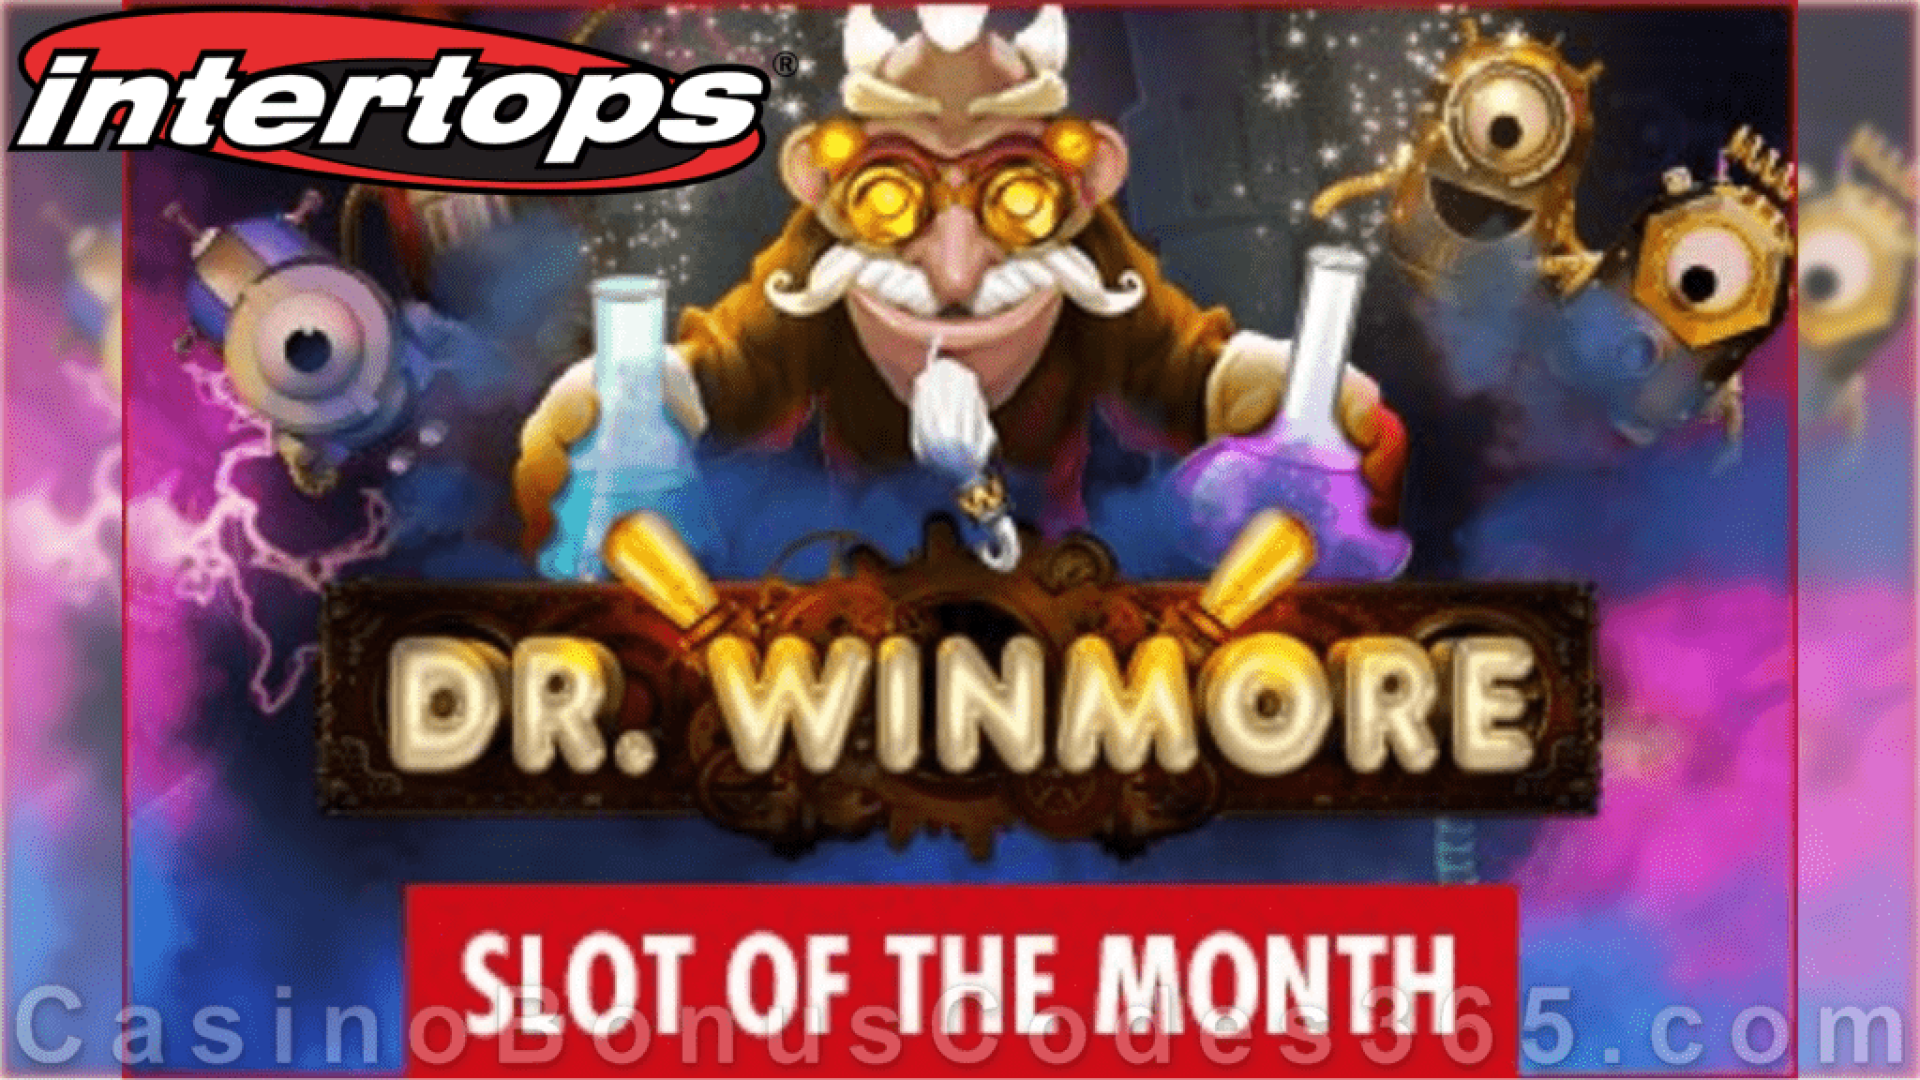 Intertops Casino Red RTG Dr. Winmore September Slot of the Month Special Deal